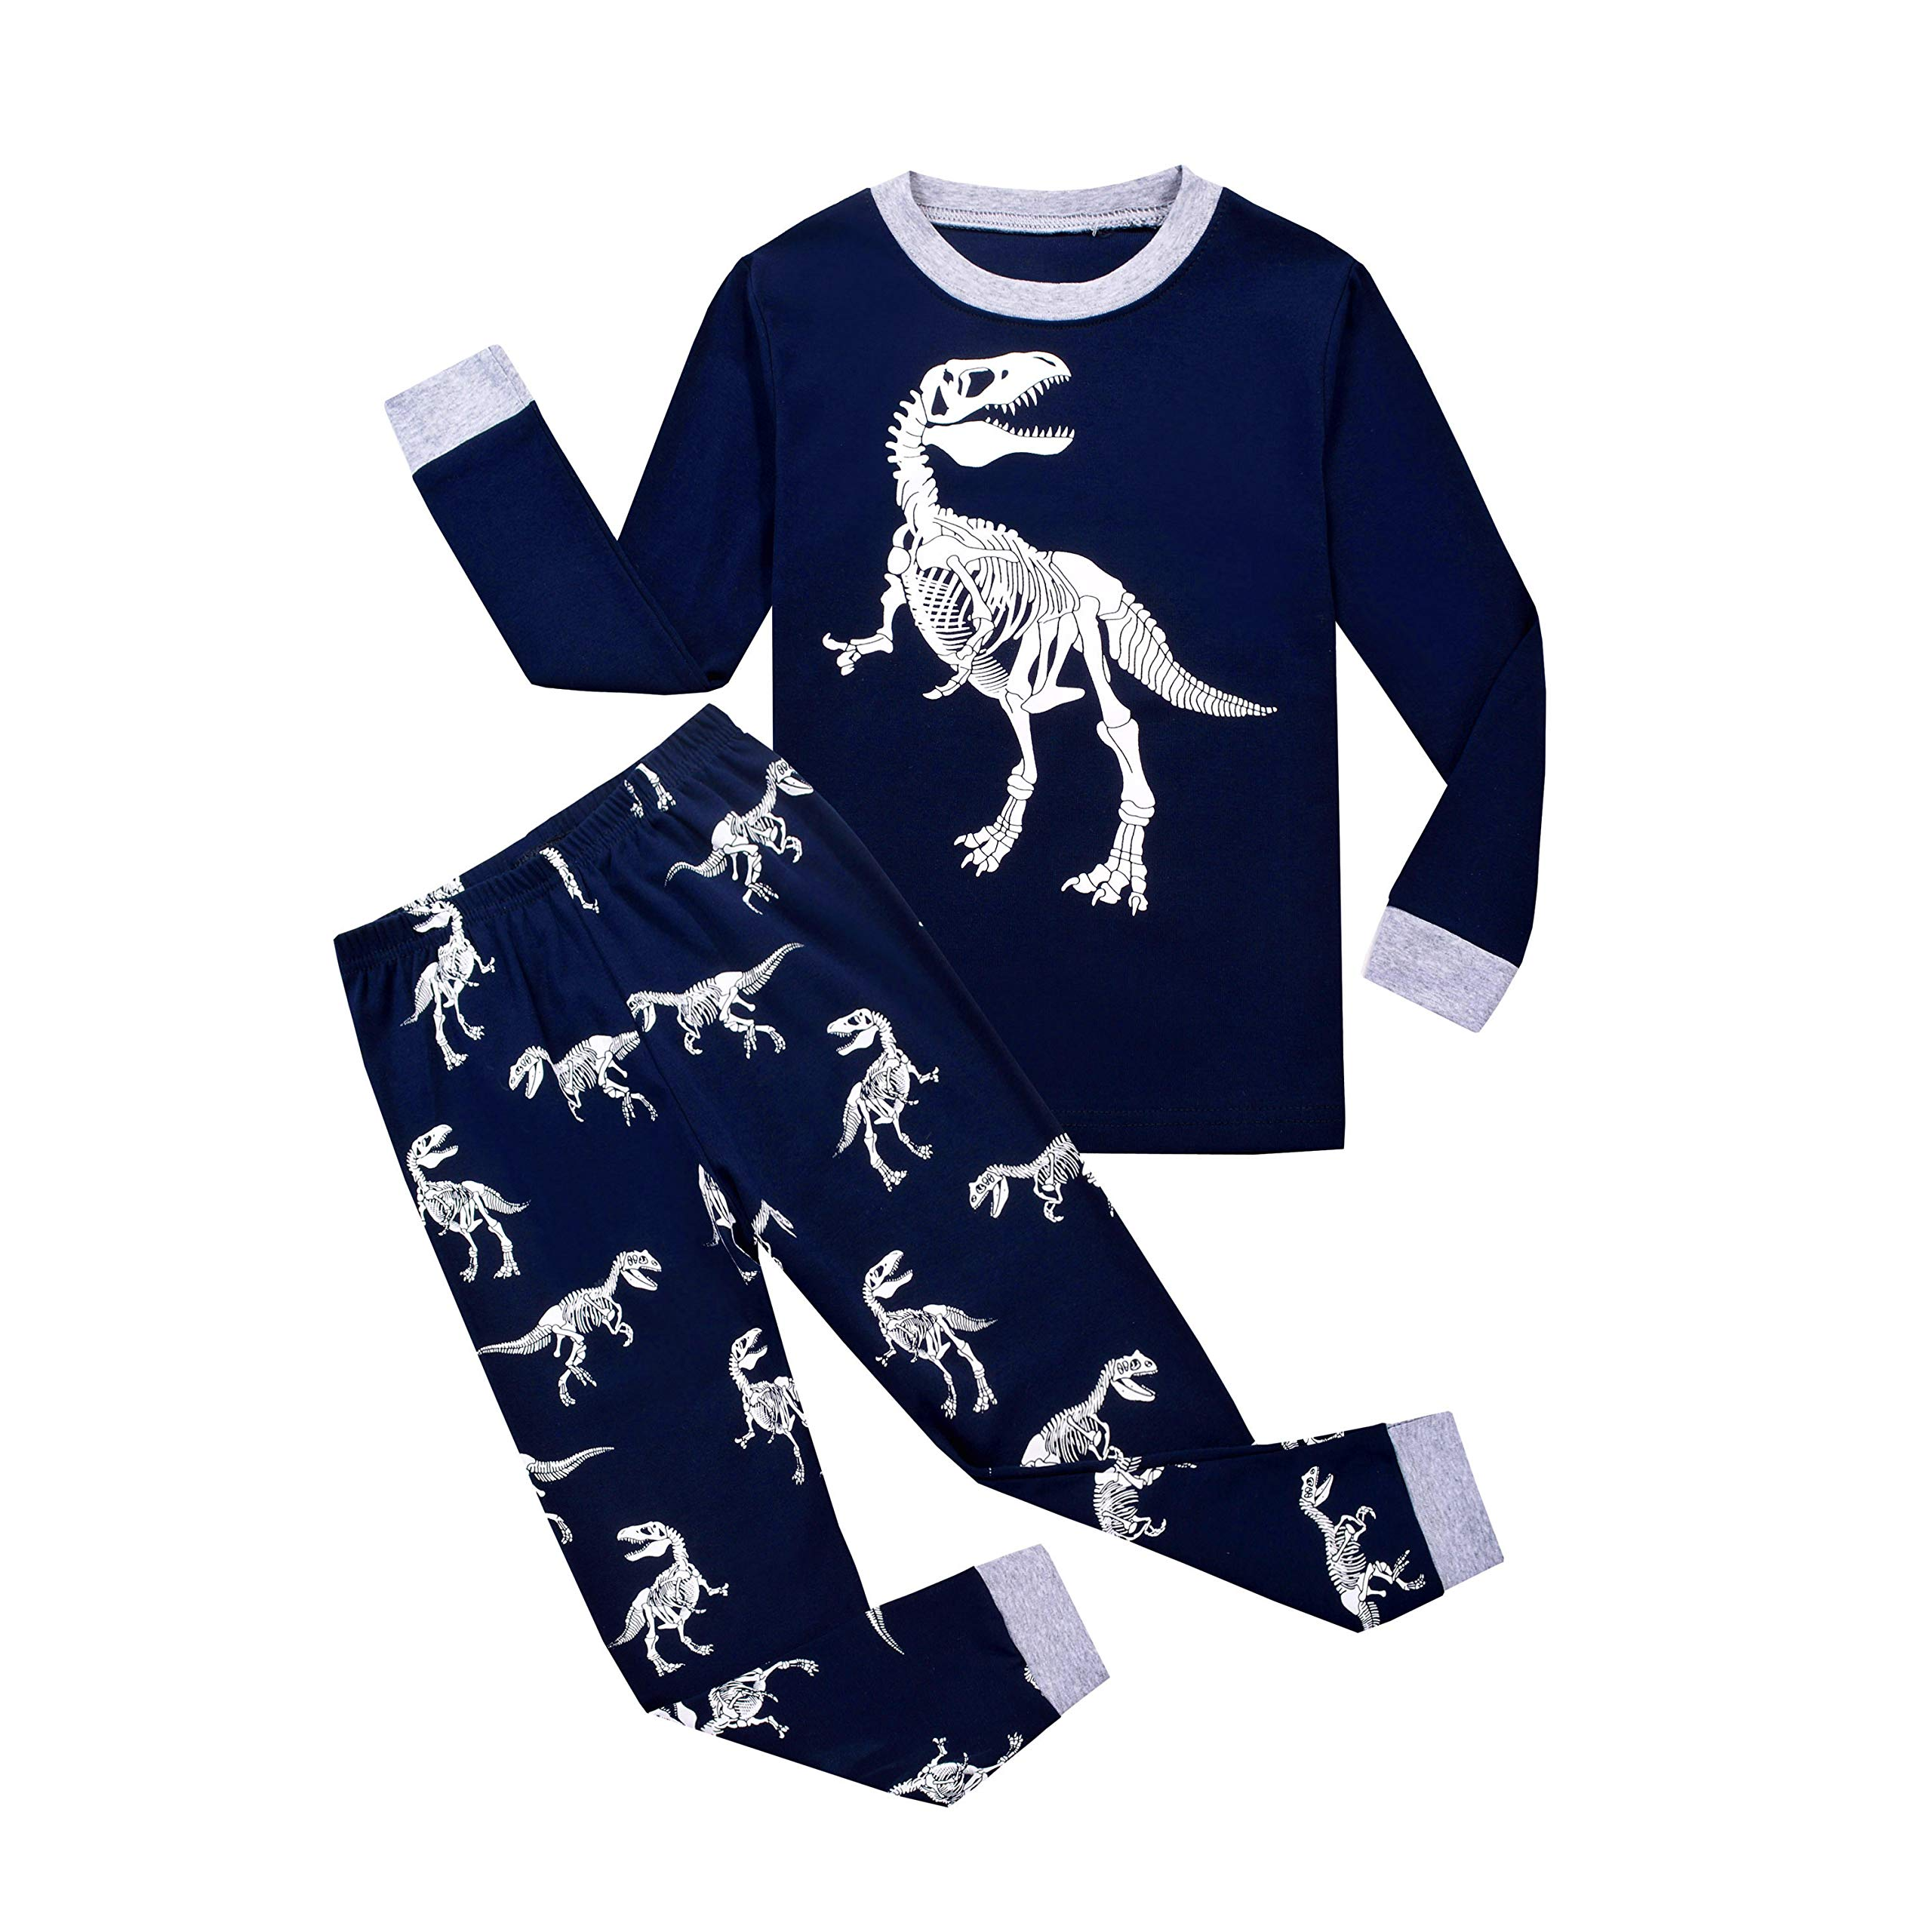 Ecwin Boys Dinosaur Pajamas Toddler Sleepwear Set Cotton Clothes Kids PJS